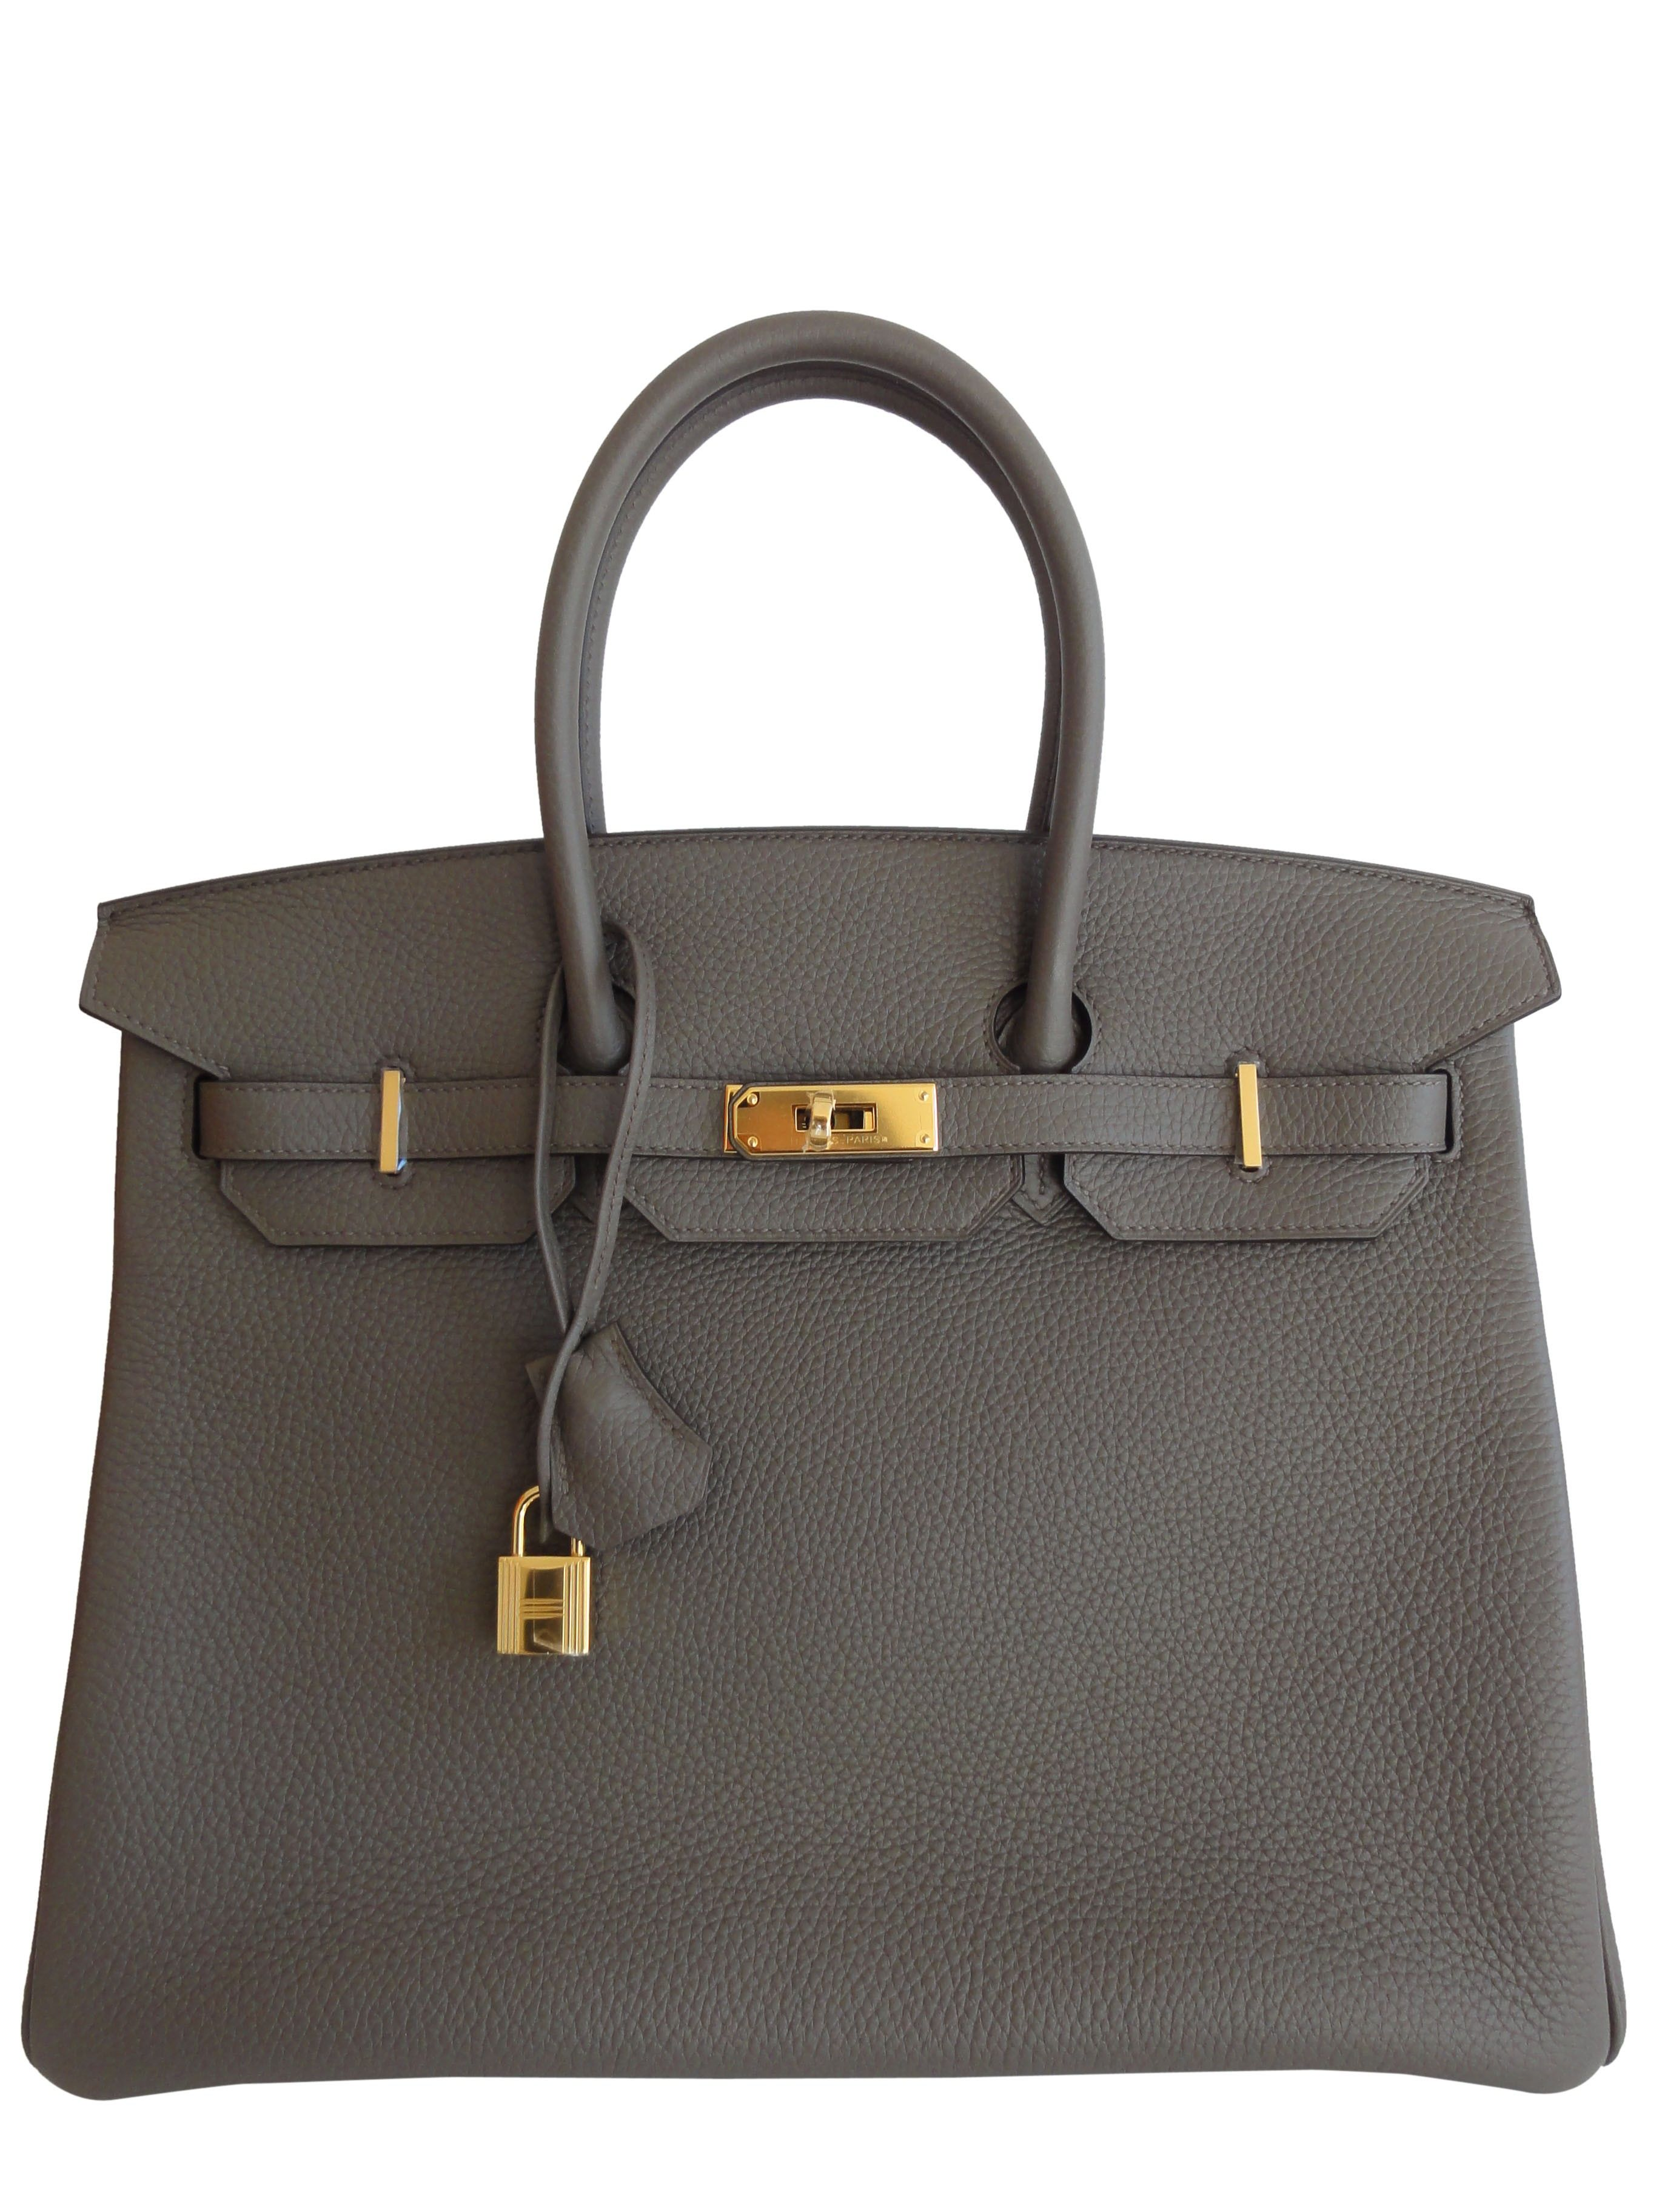 0f916221935 Hermes Etain Grey Leather 35cm Birkin Bag with Gold Hardware - HERMES  Pristine Condition 35cm Birkin ETAIN is a beautiful Dove Grey T stamp Love  this color ...